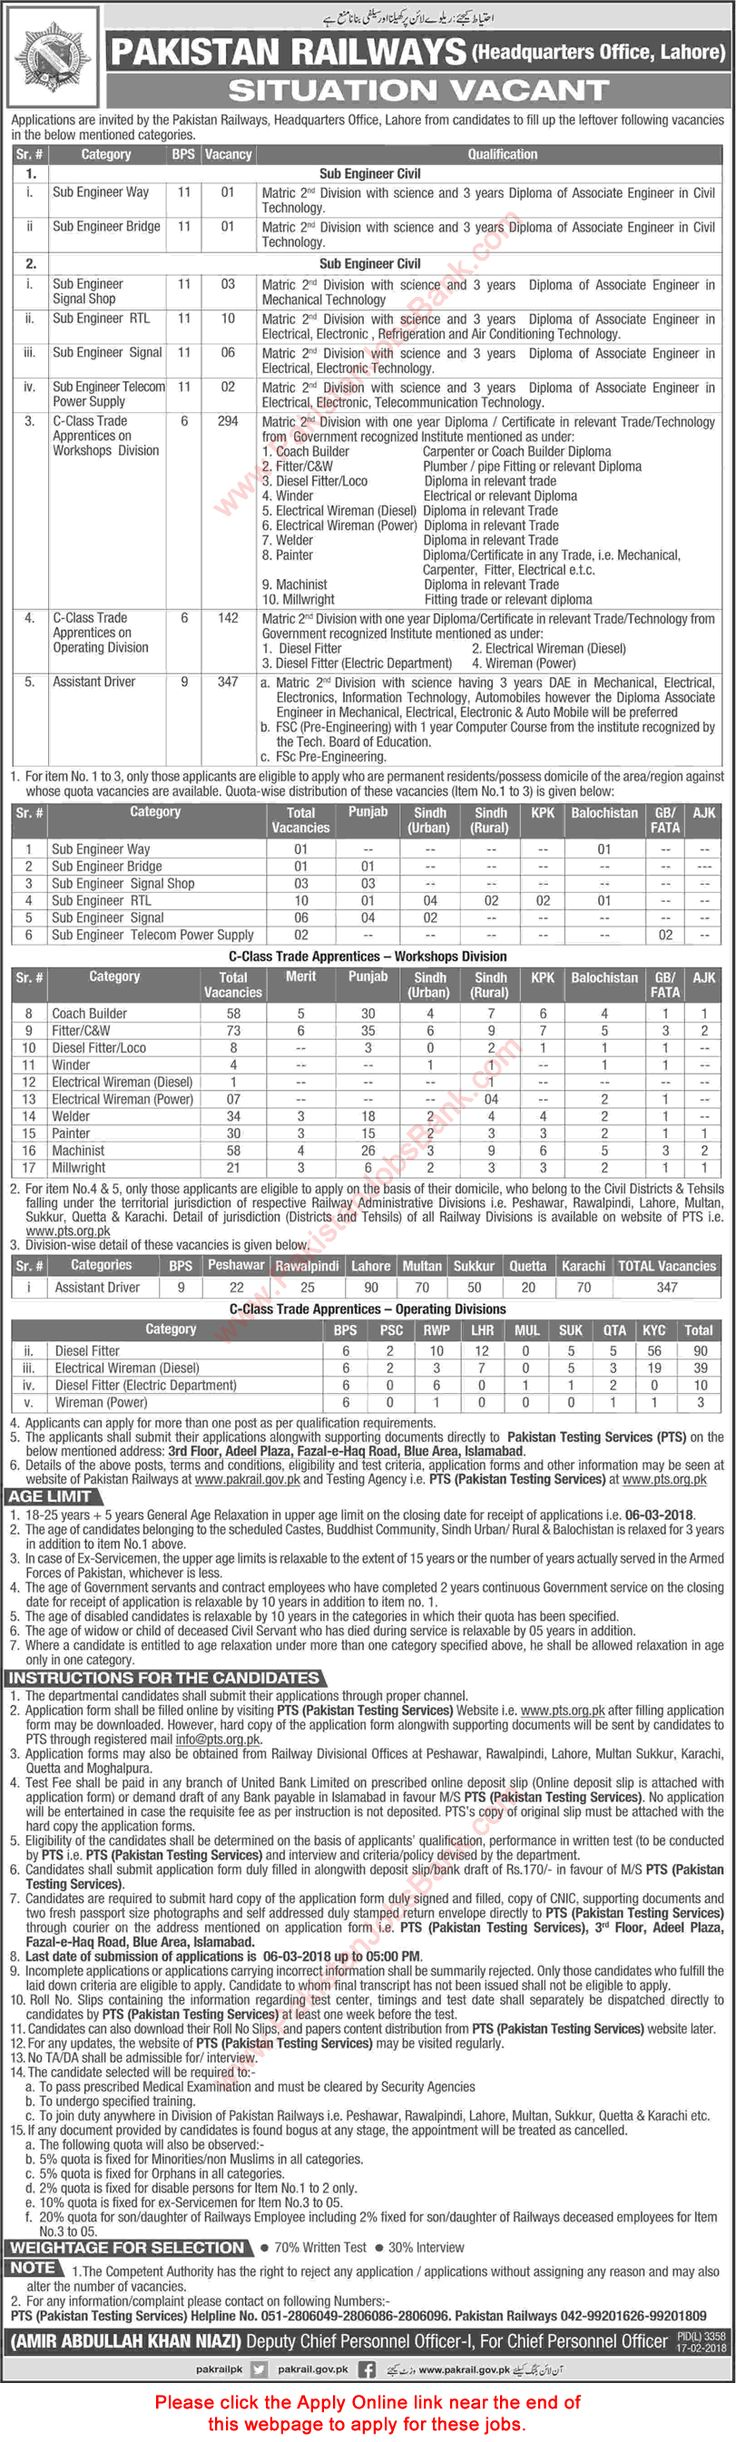 Pakistan Railways Jobs 2018 February PTS Online Application Form Trade Apprentices, Assistant Drivers & Sub Engineers Latest